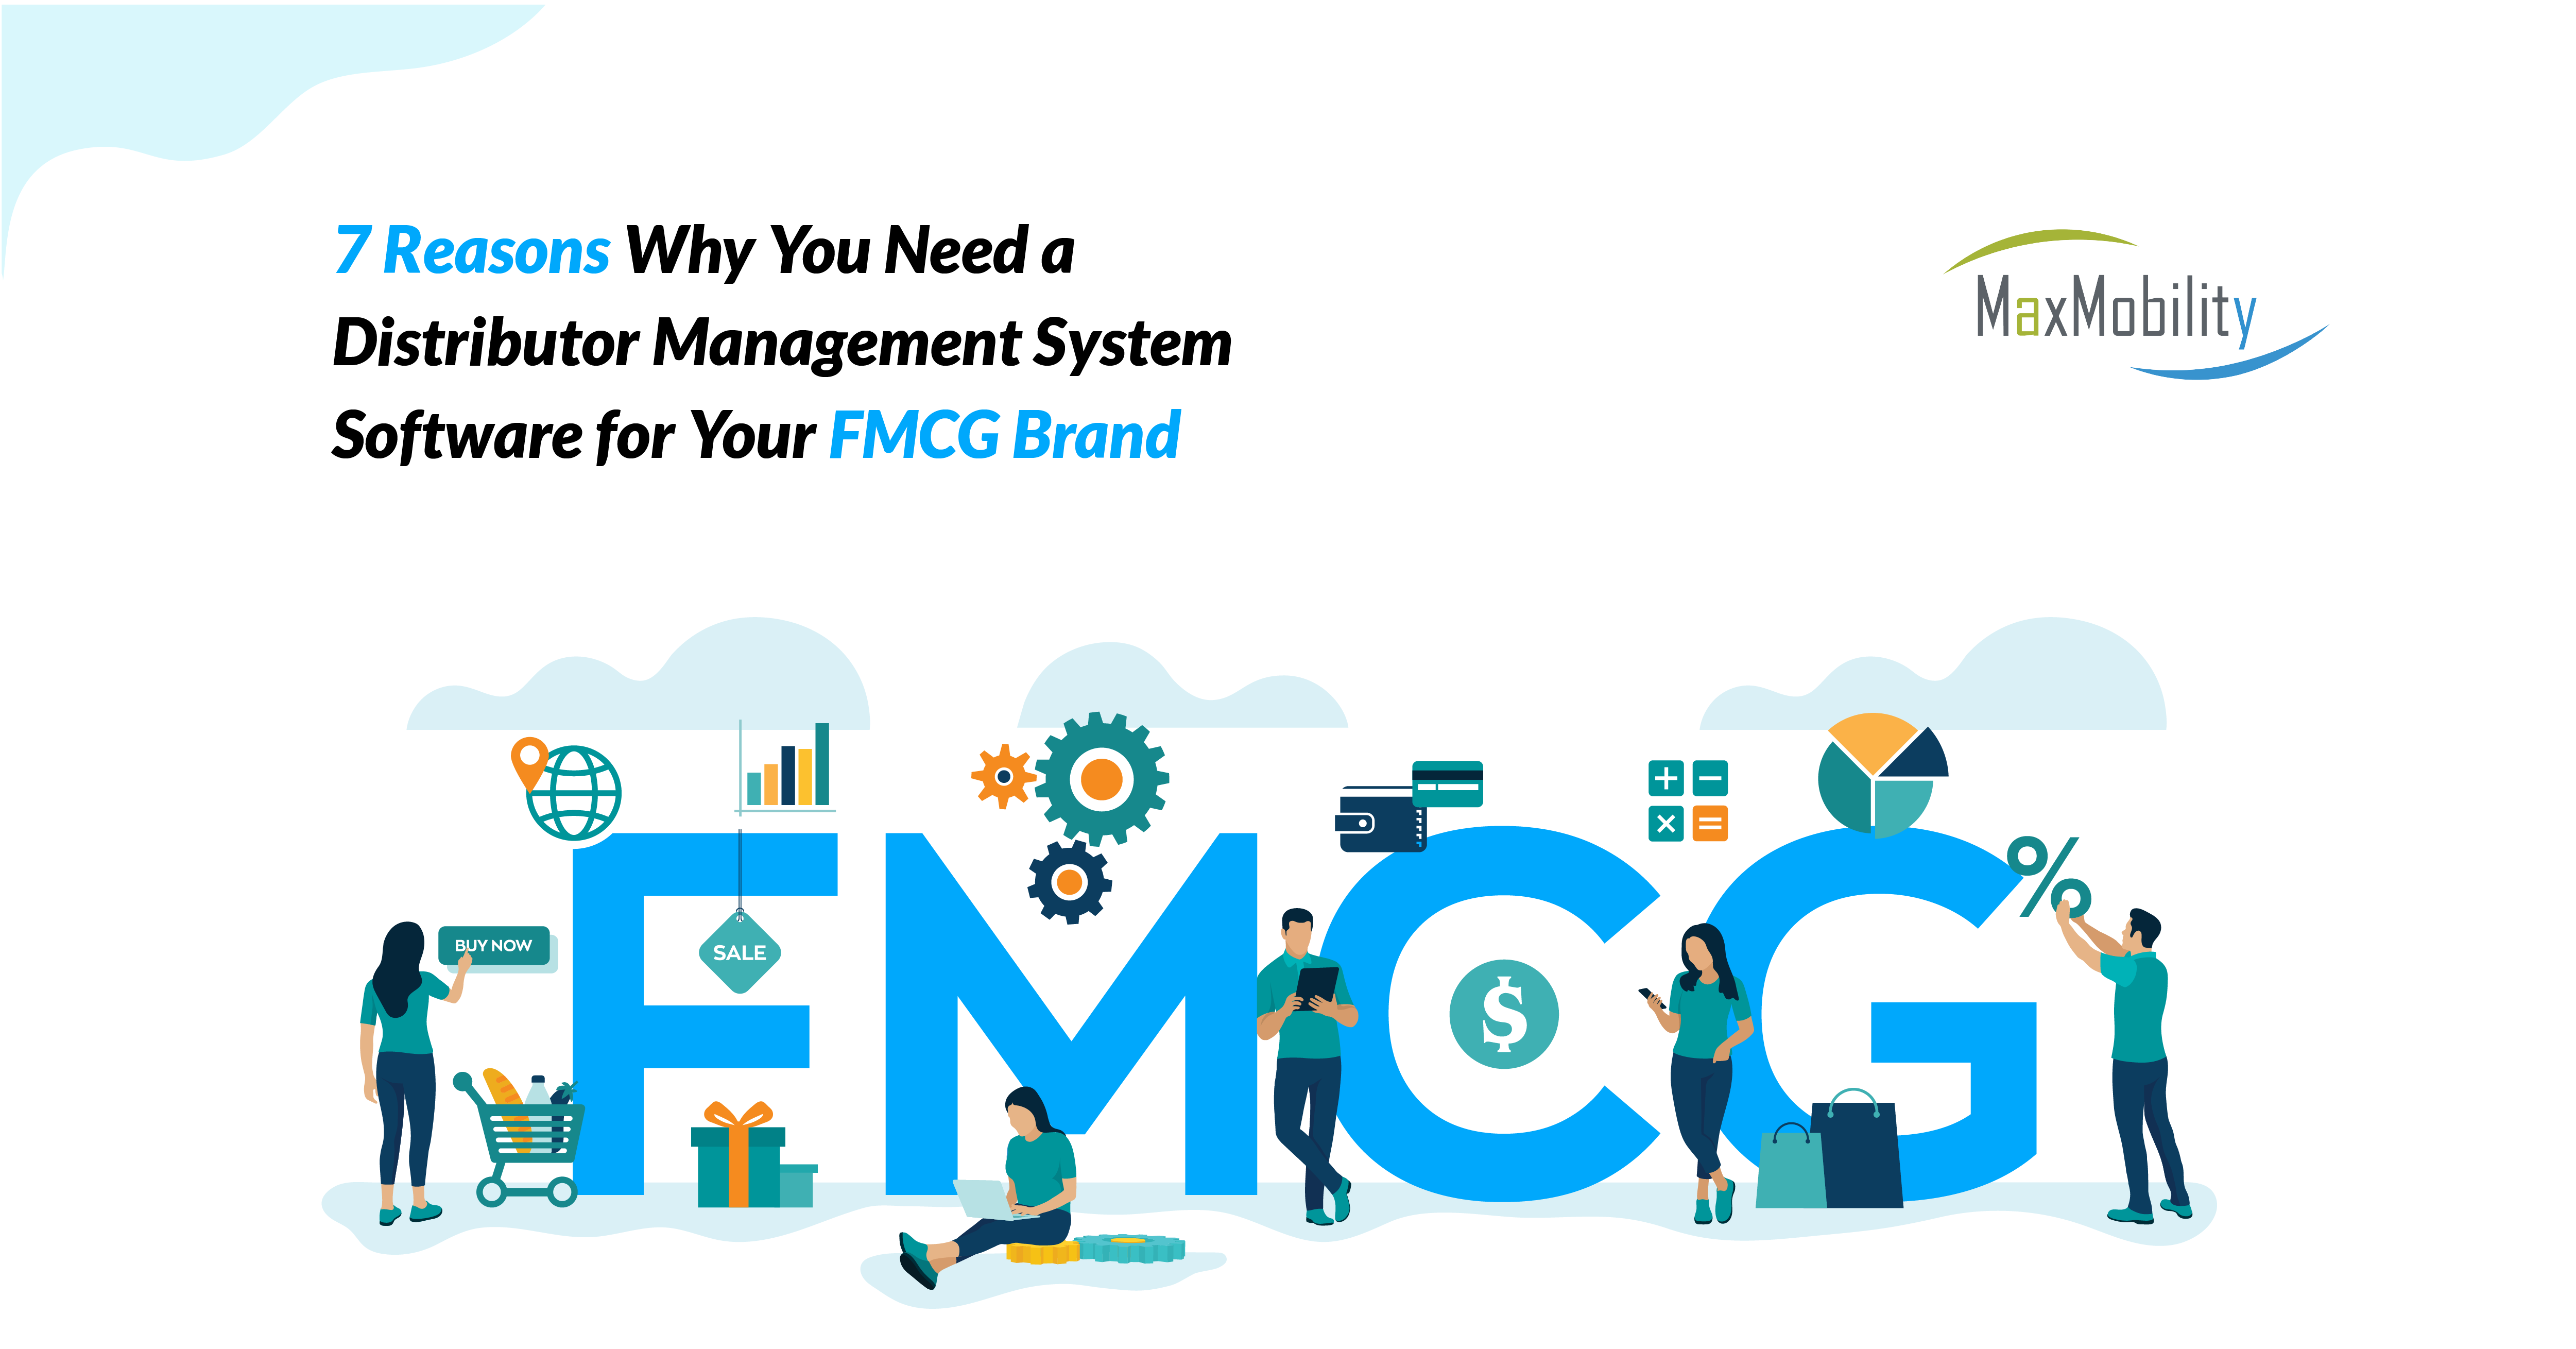 7 Reasons Why You Need a Distributor Management System Software for Your FMCG Brand